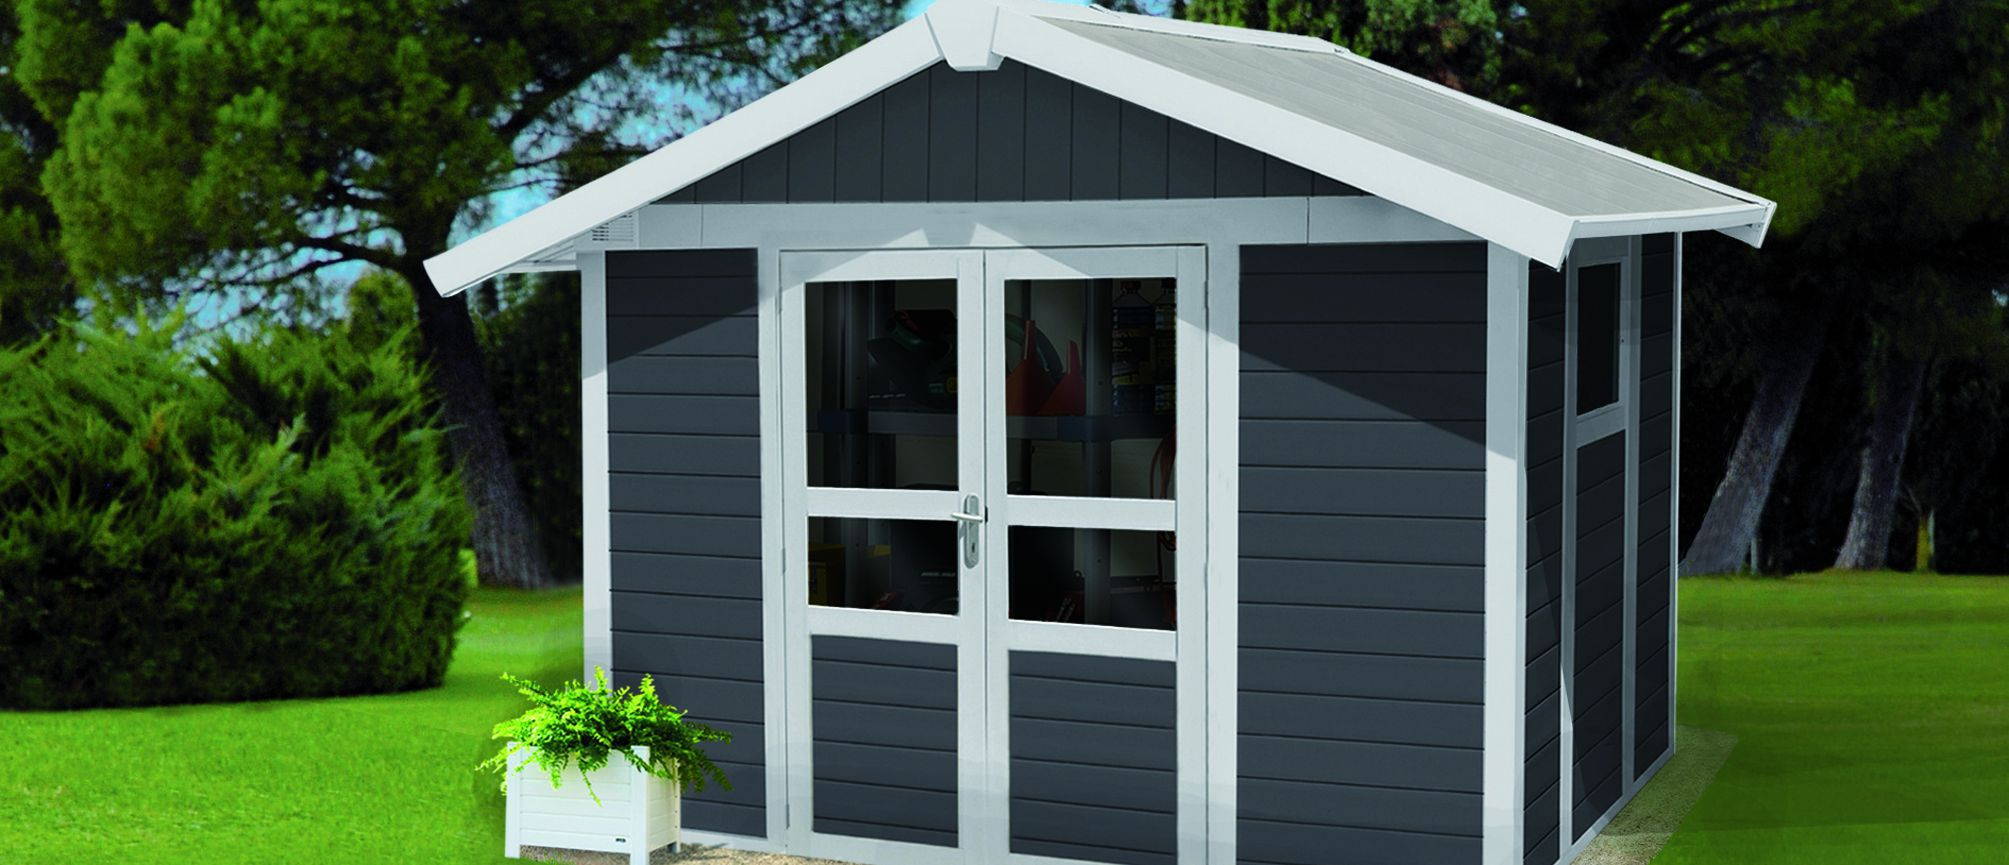 Delightful Metal Garden Shed / Recycled Plastic / Contemporary / Residential   BASIC